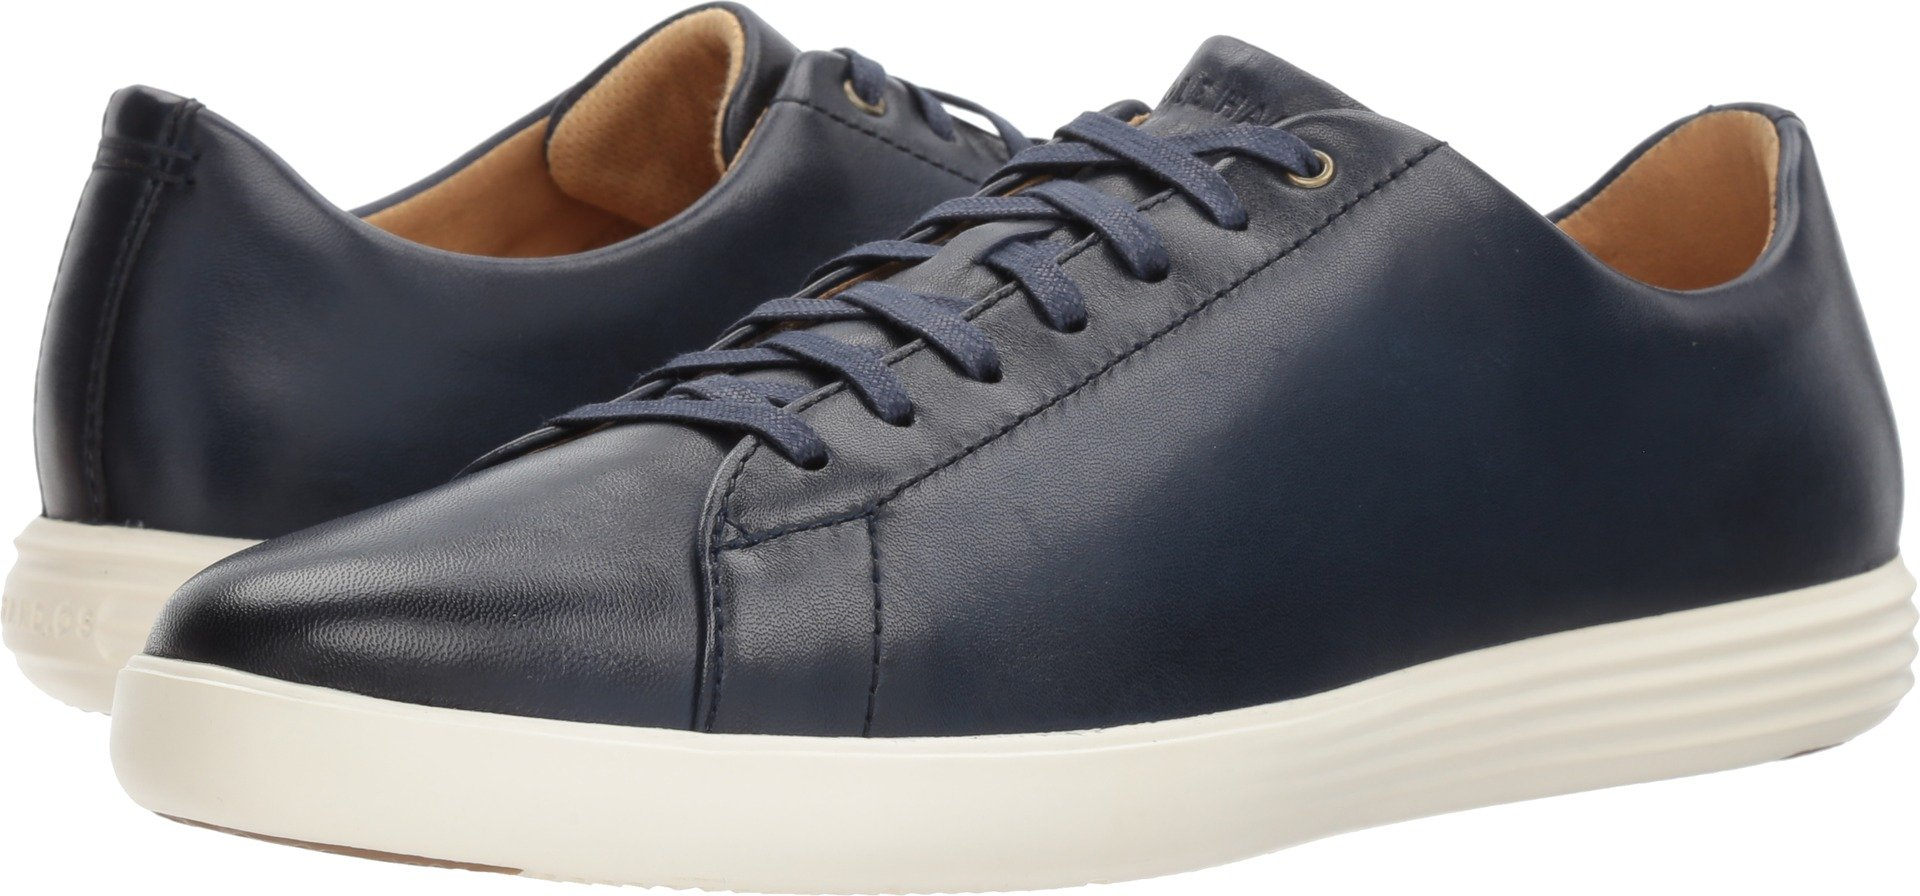 Cole Haan Mens Grand Crosscourt II Navy Leather Burnish 9 W - Wide